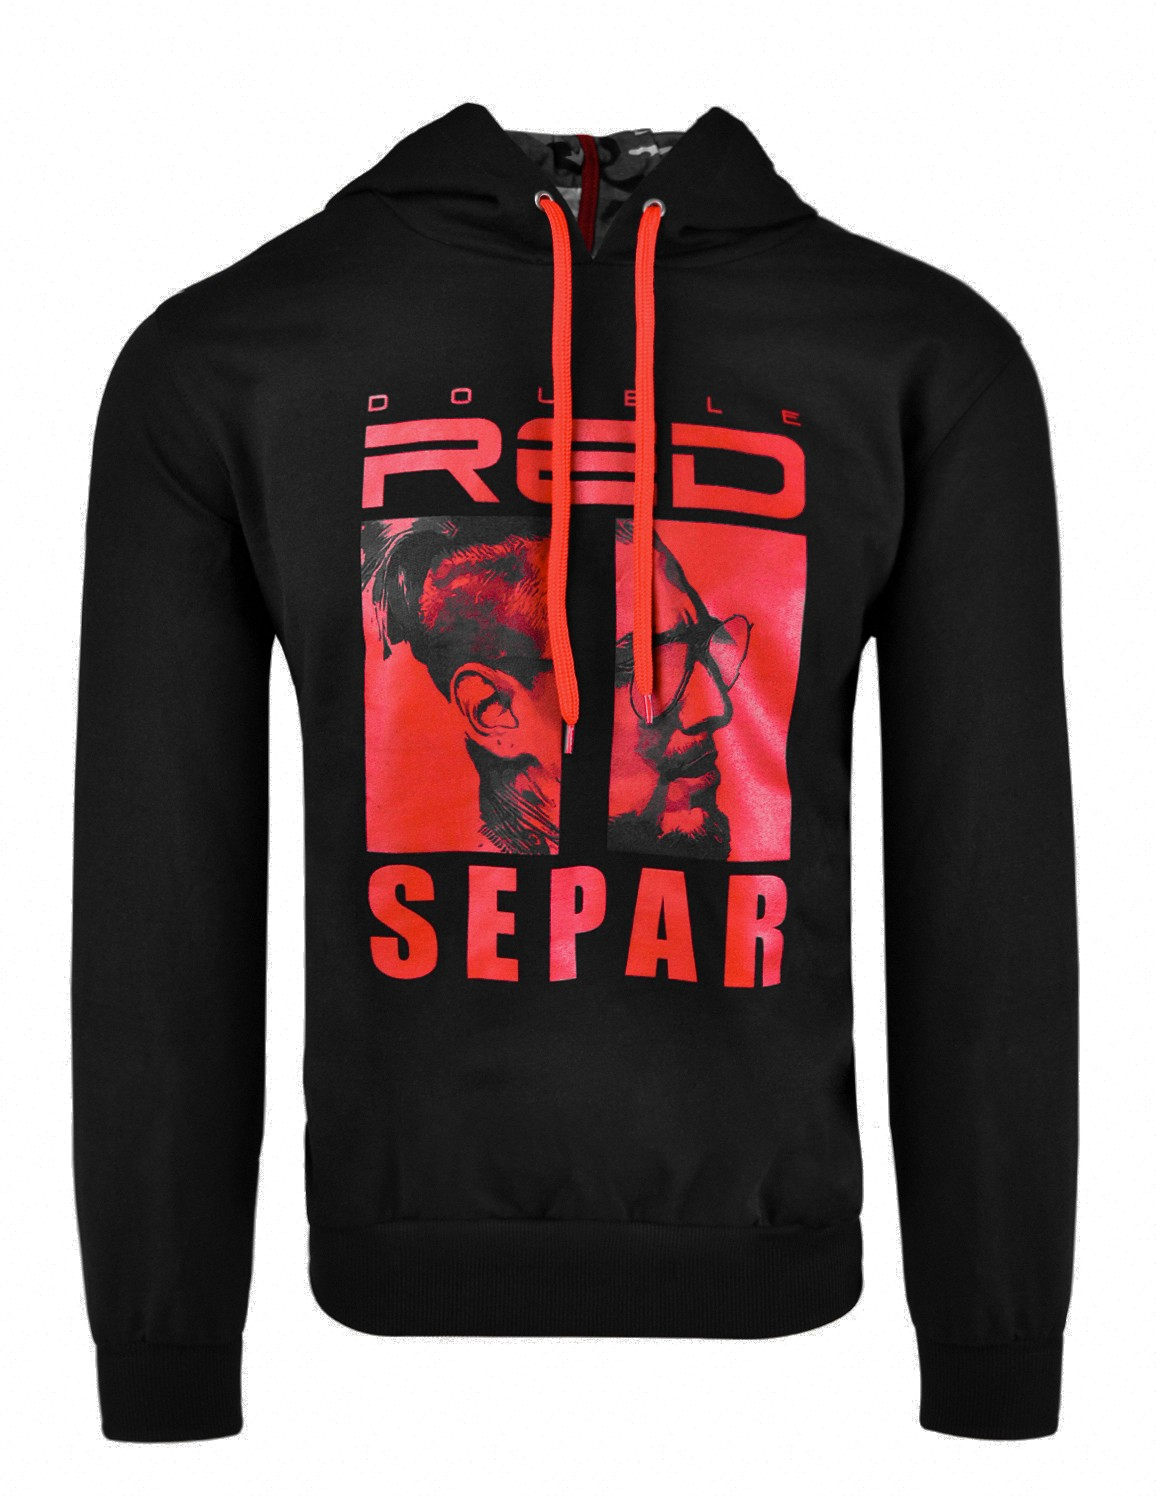 Limited Edition SEPAR Sweatshirt